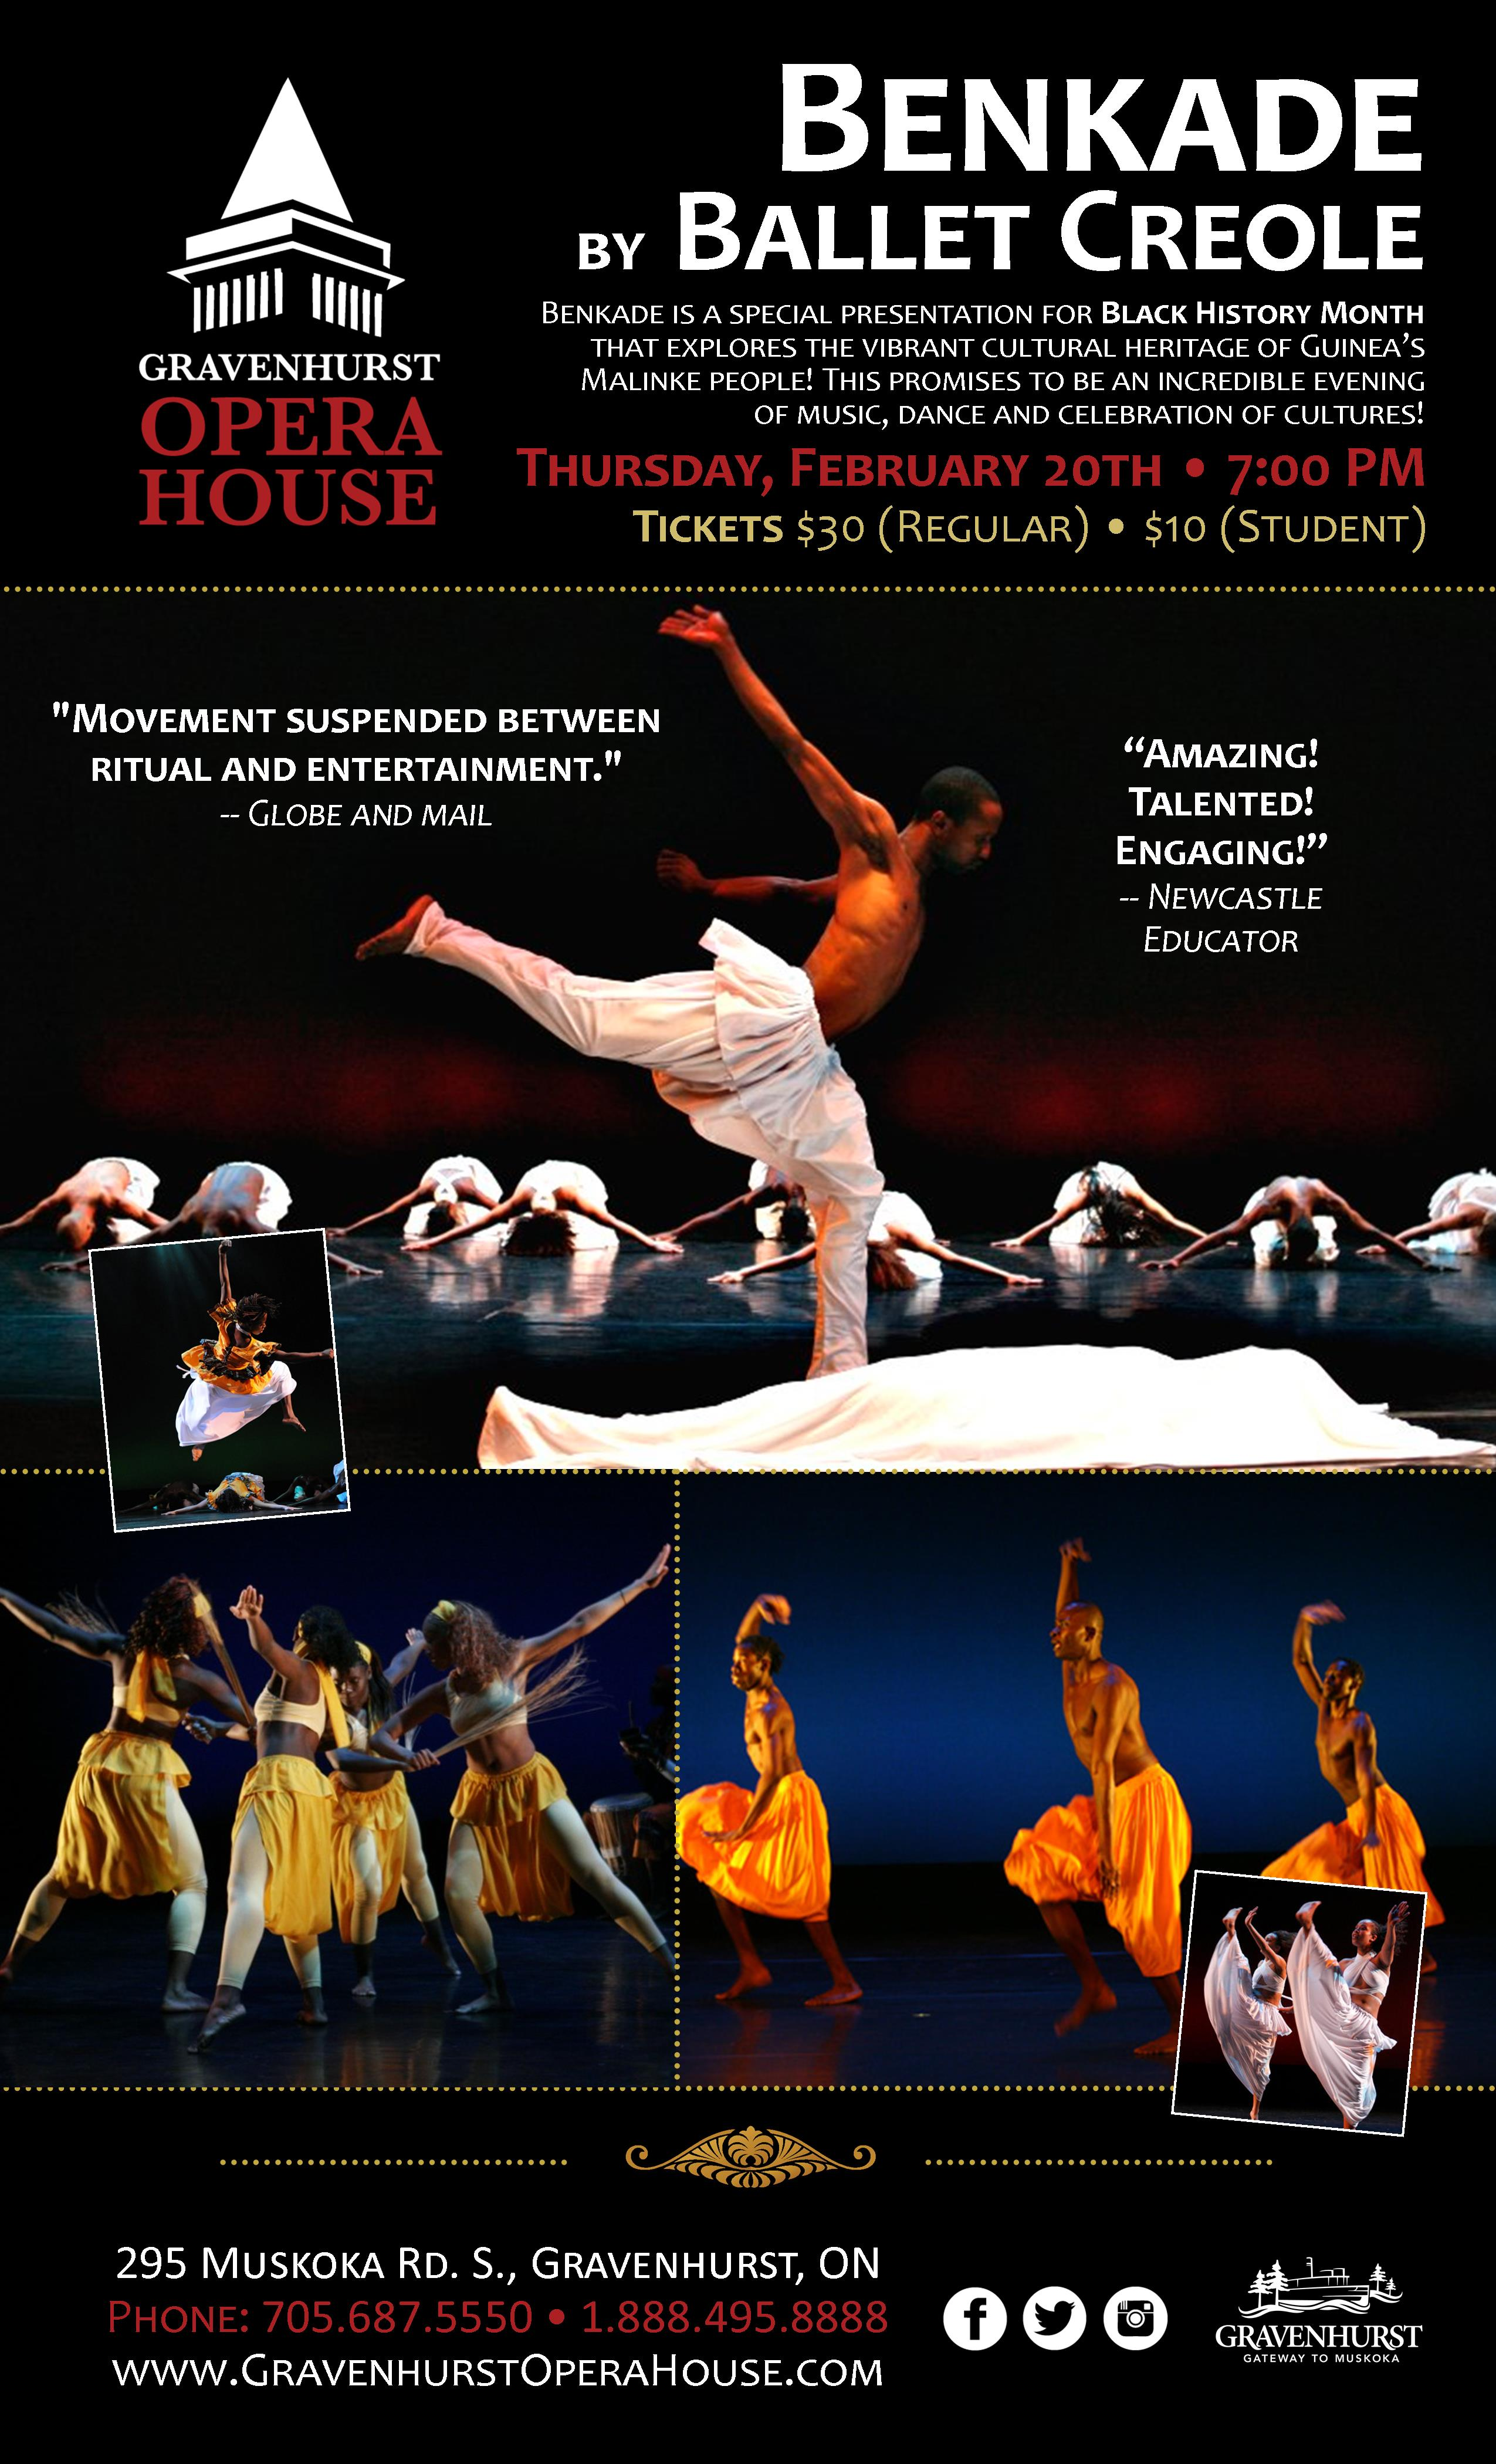 Promotional Poster for the upcoming Bankade Ballet Creole Performance on February 20, 2020